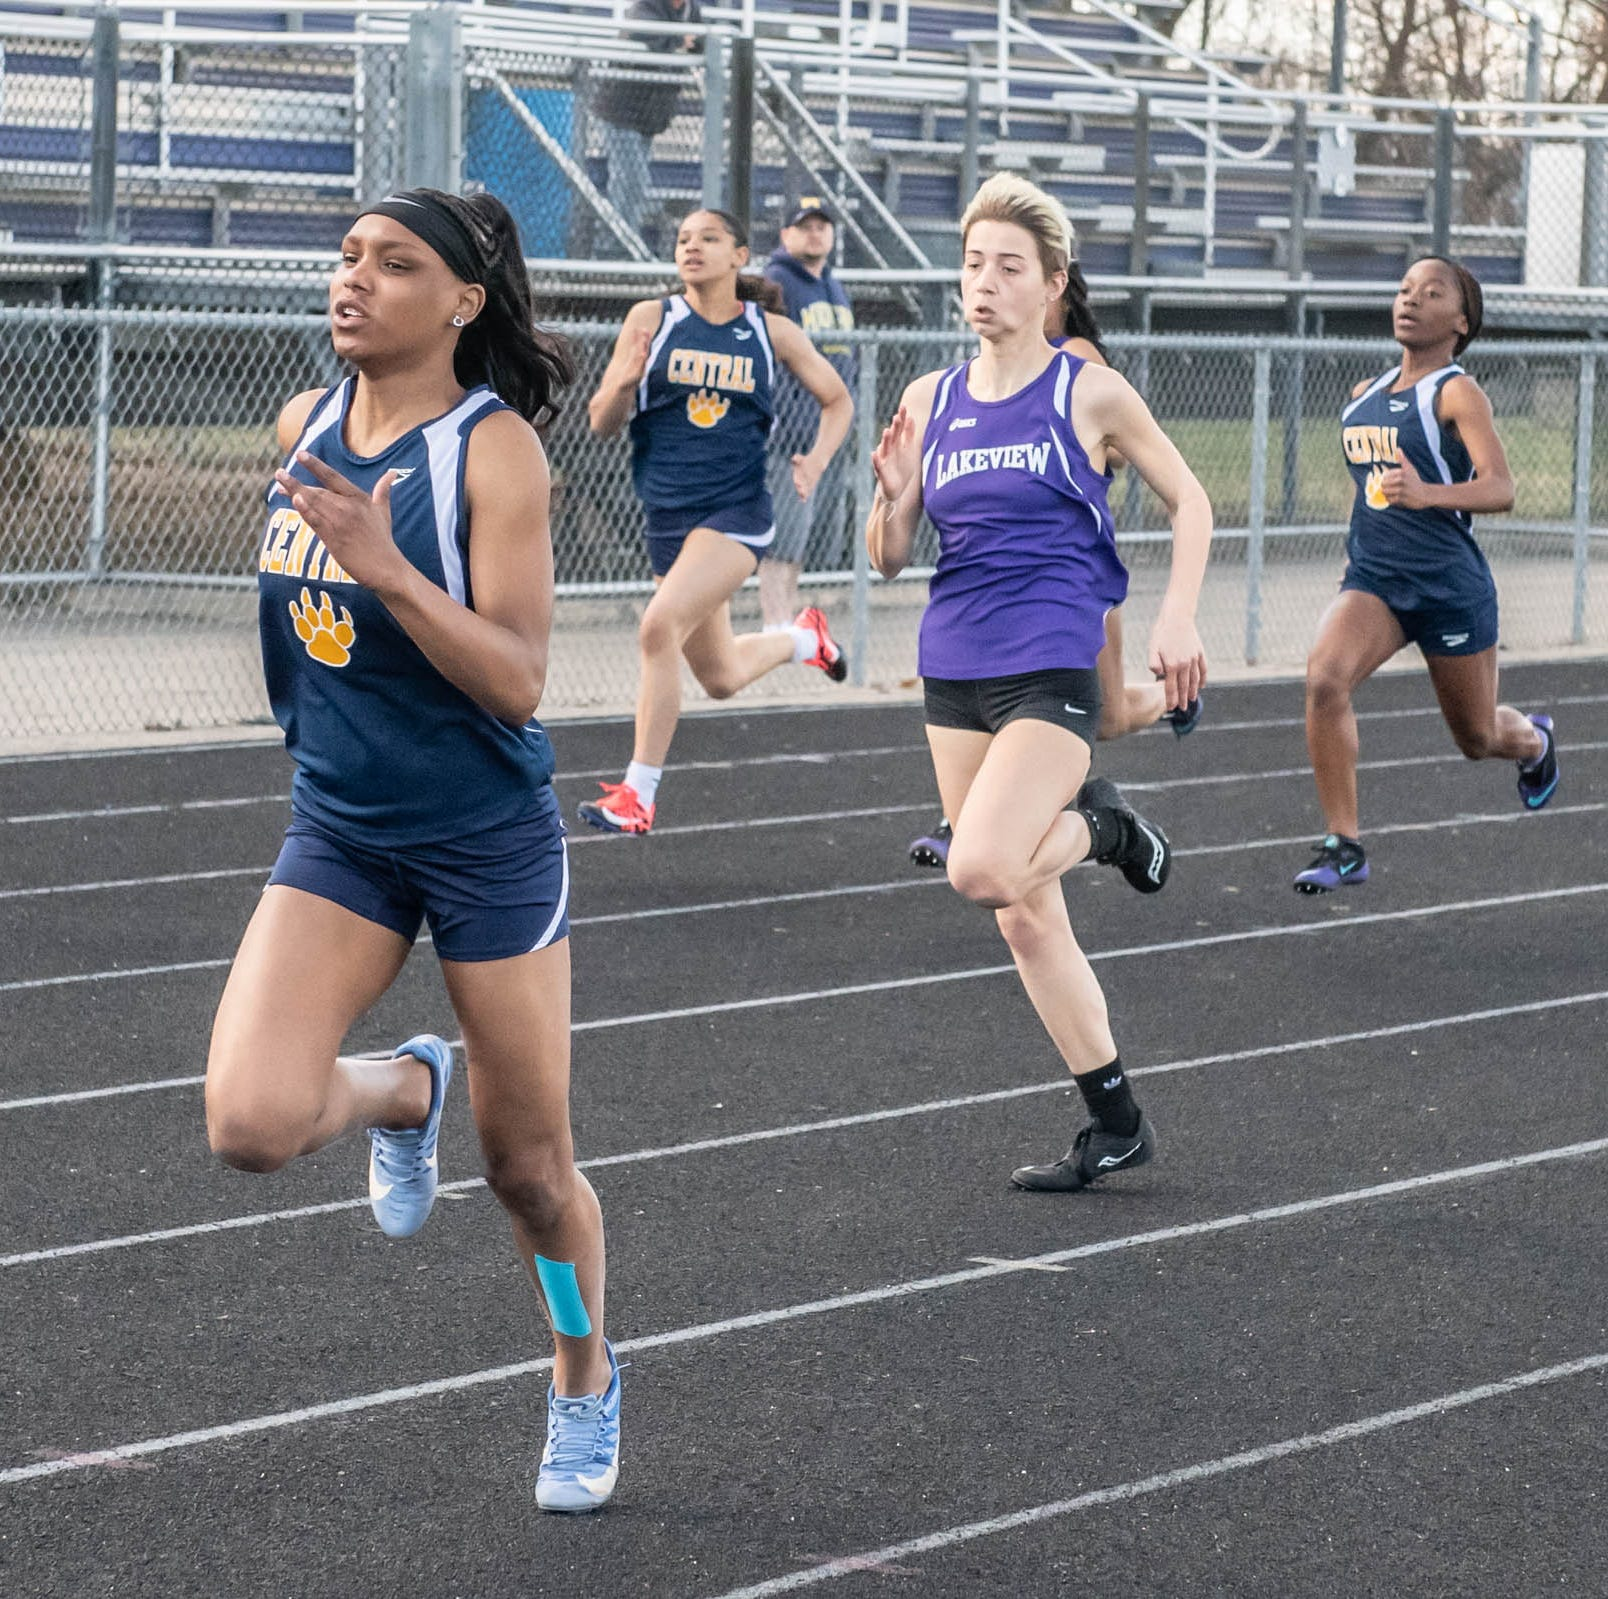 Spring preview: New coaches bring fresh look to city girls track scene